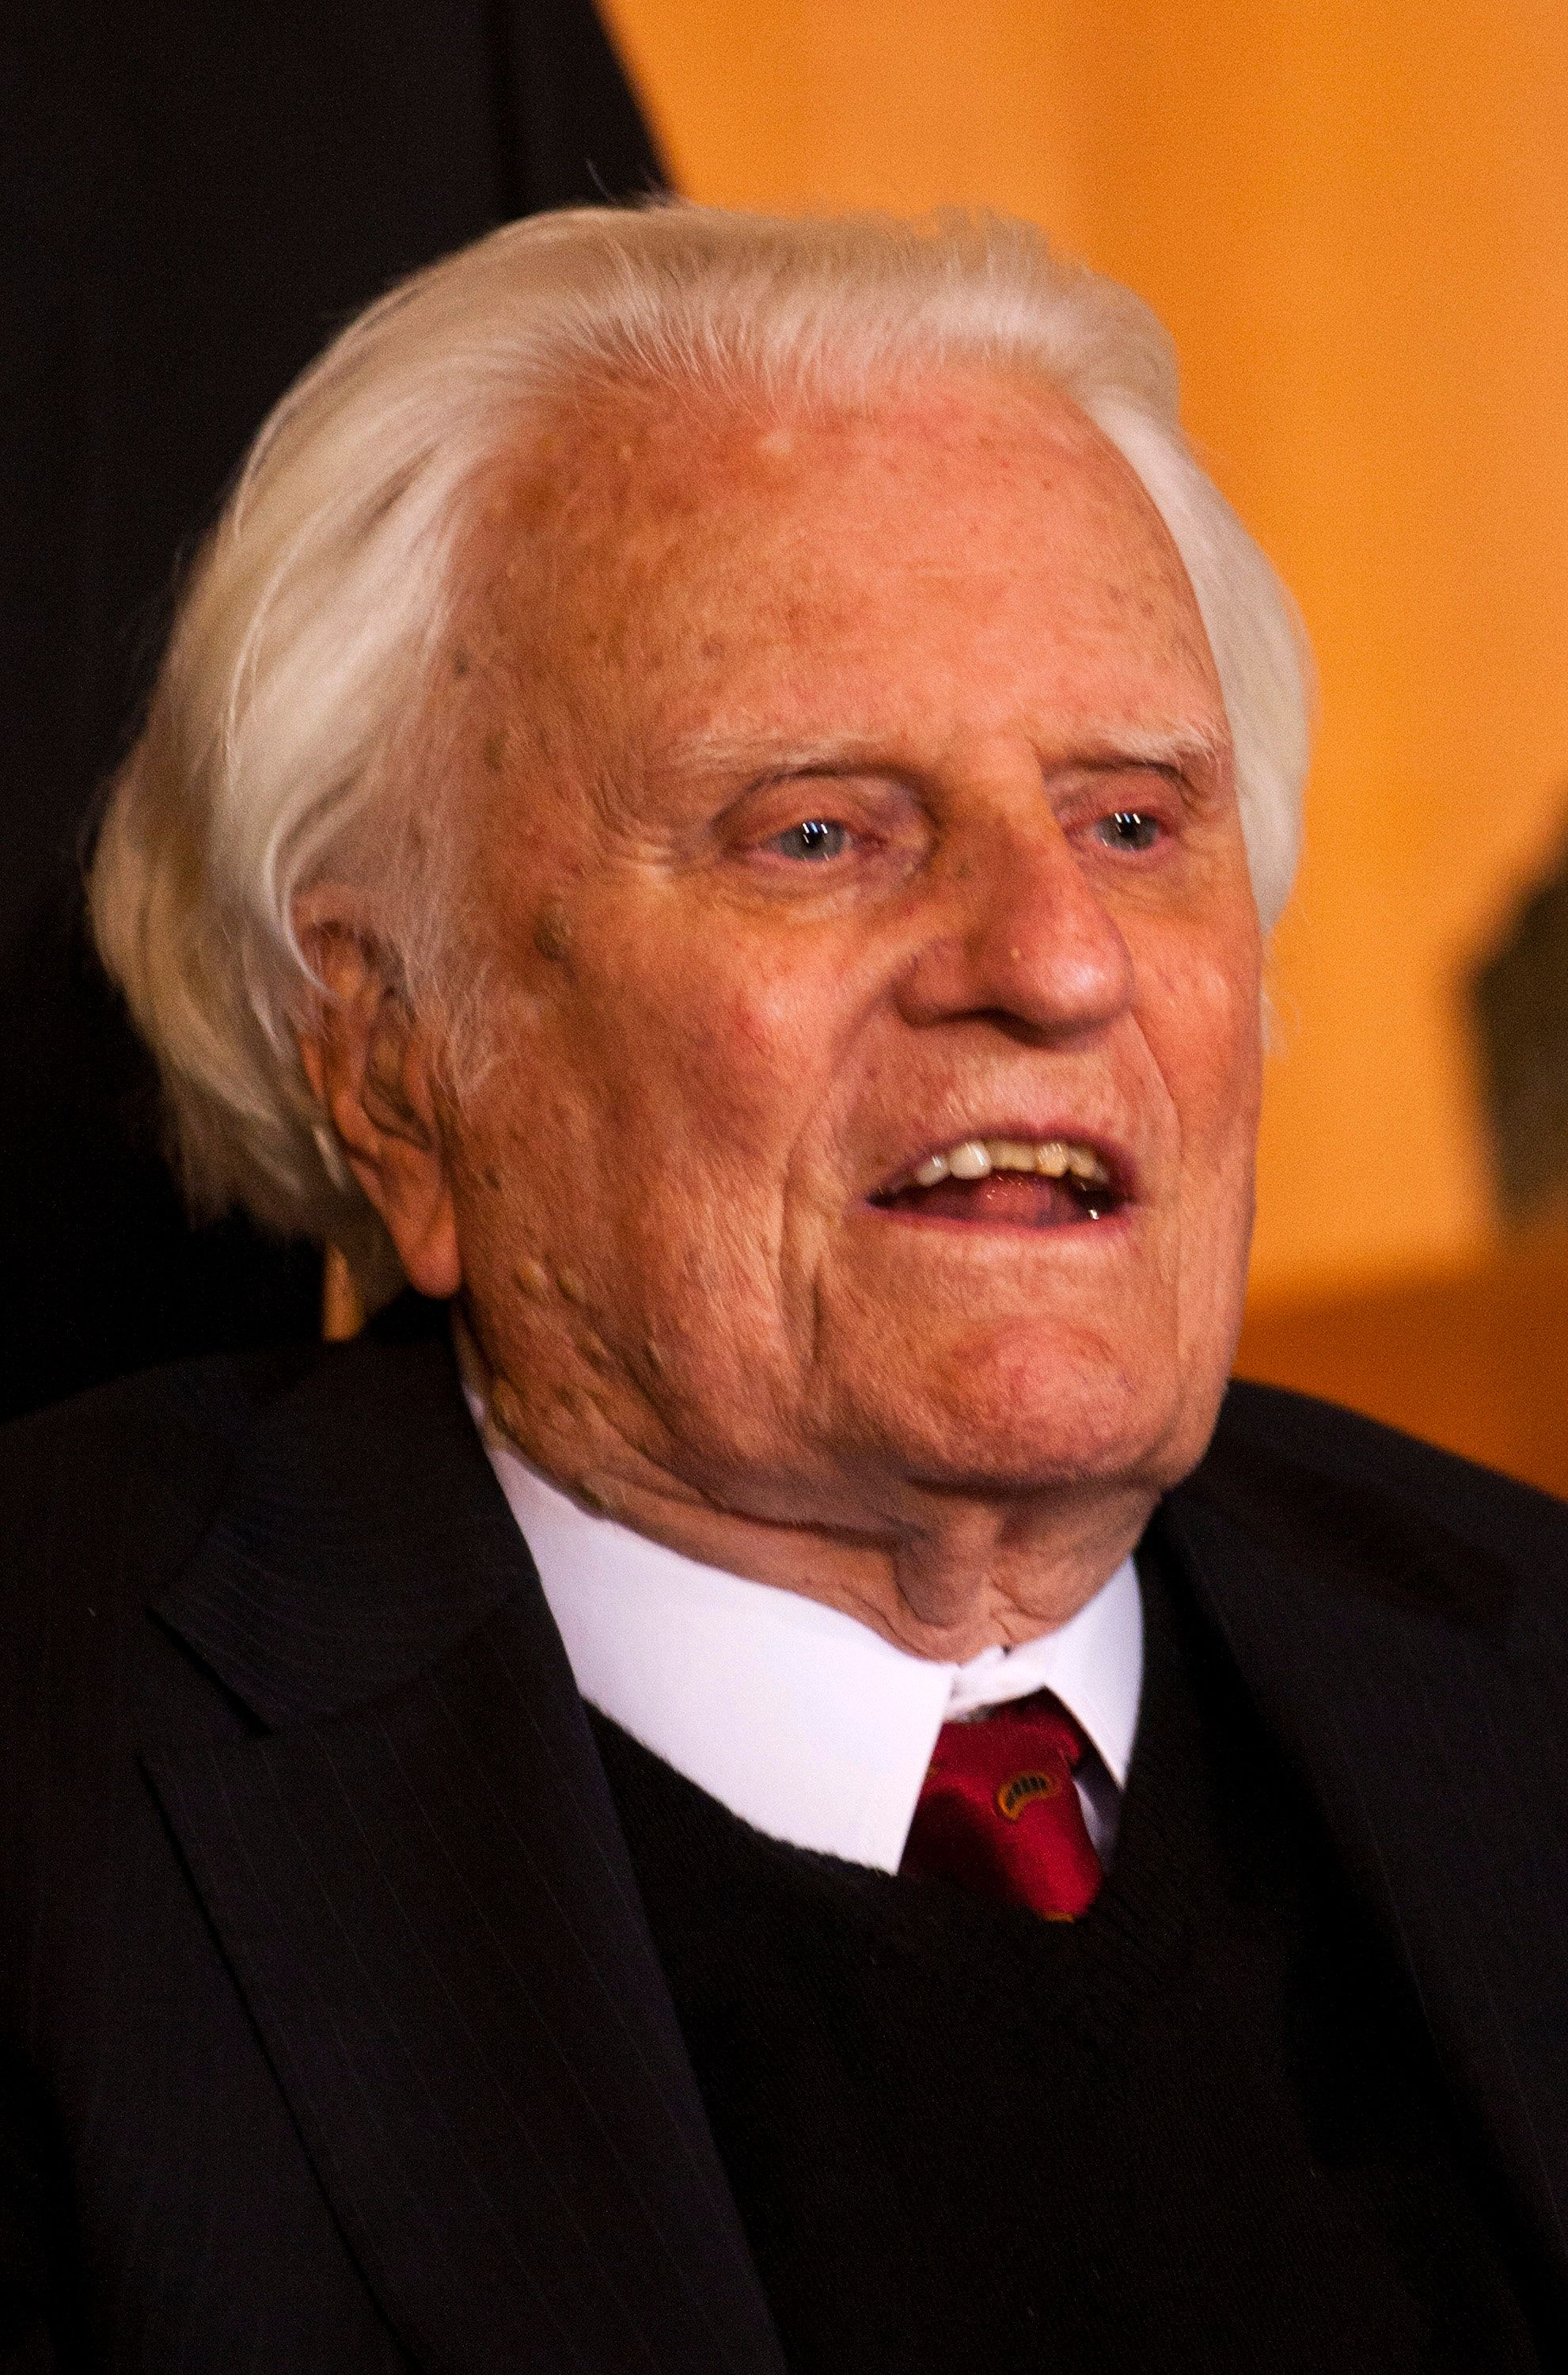 Billy Graham, seen in 2010, has died at the age of 99.